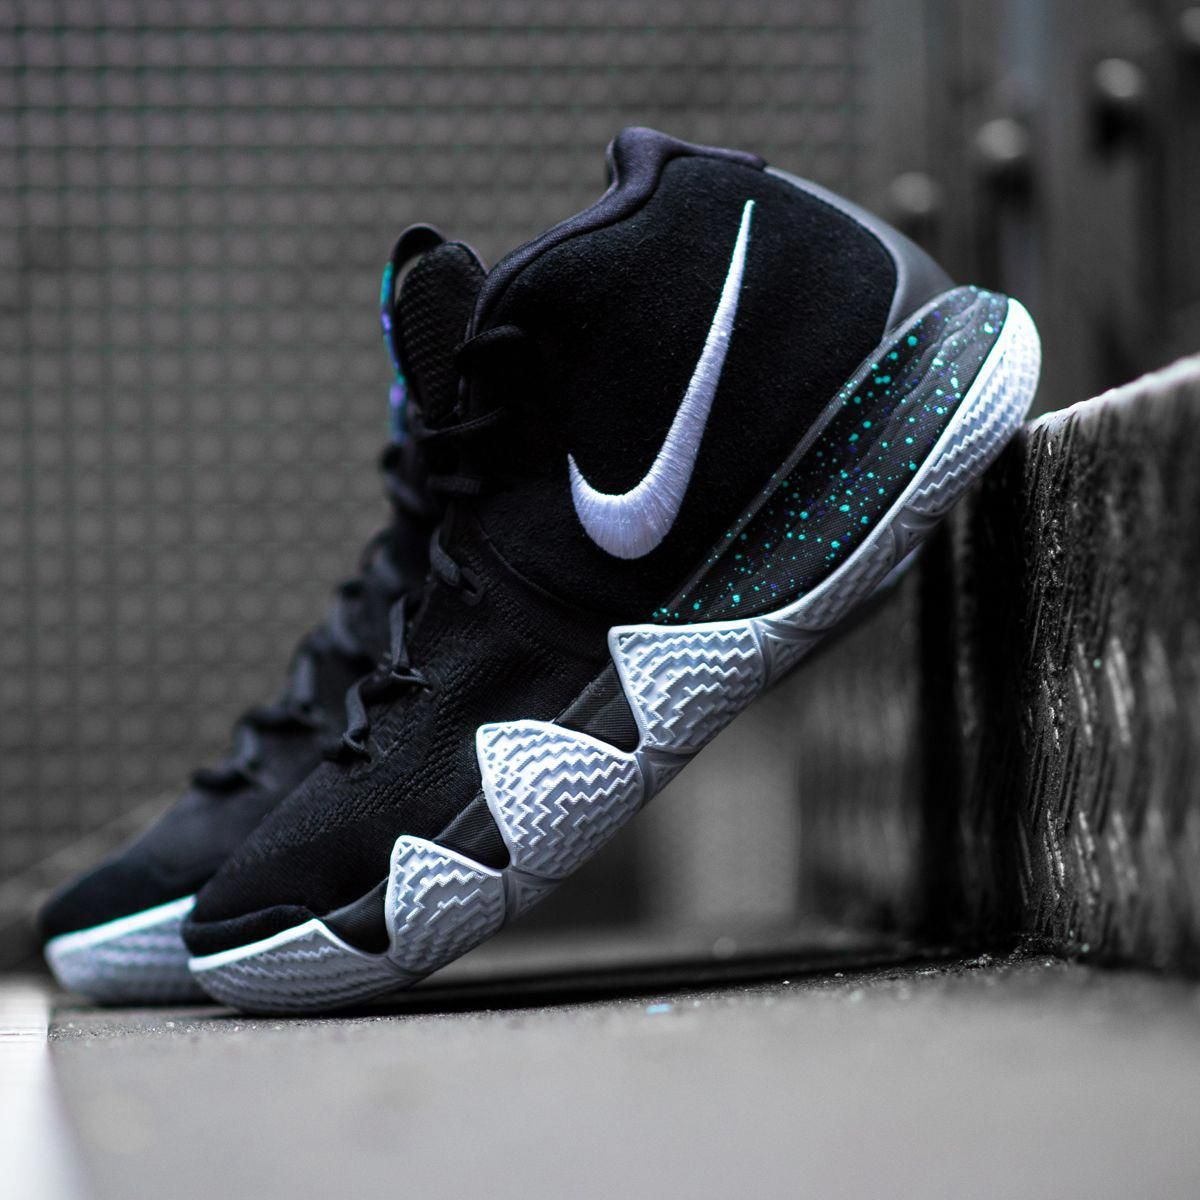 buy online e3bf0 3af18 Kyrie s got some new shoes! Get the Nike Kyrie 4  Black Ice  now on  KICKZ.com and in selected stores!  BasketballShoes